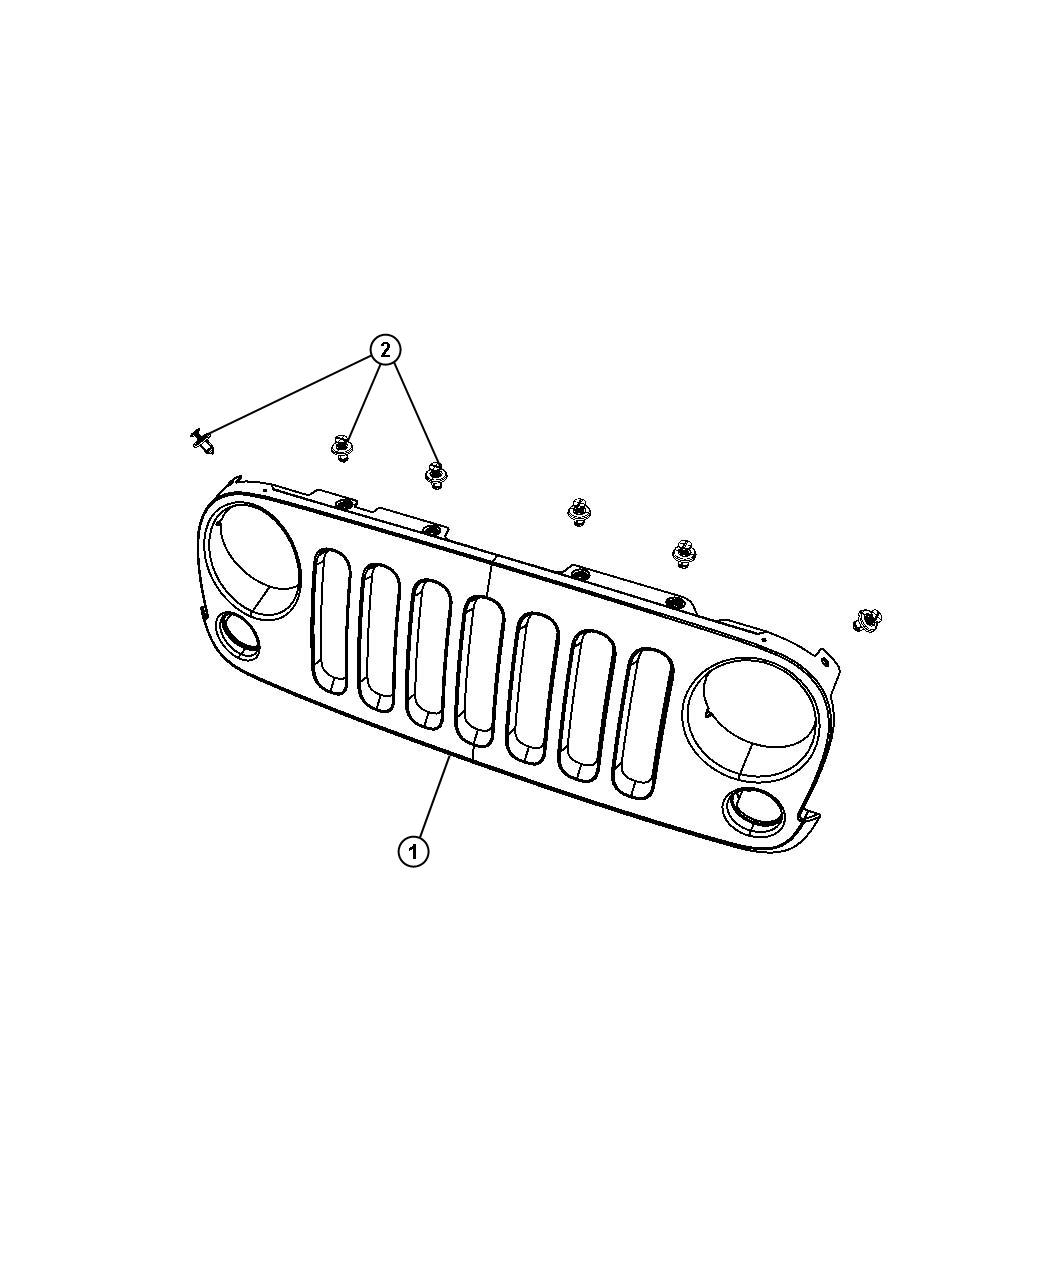 Jeep Wrangler Used for: SCREW AND WASHER. Hex Head. M8X1